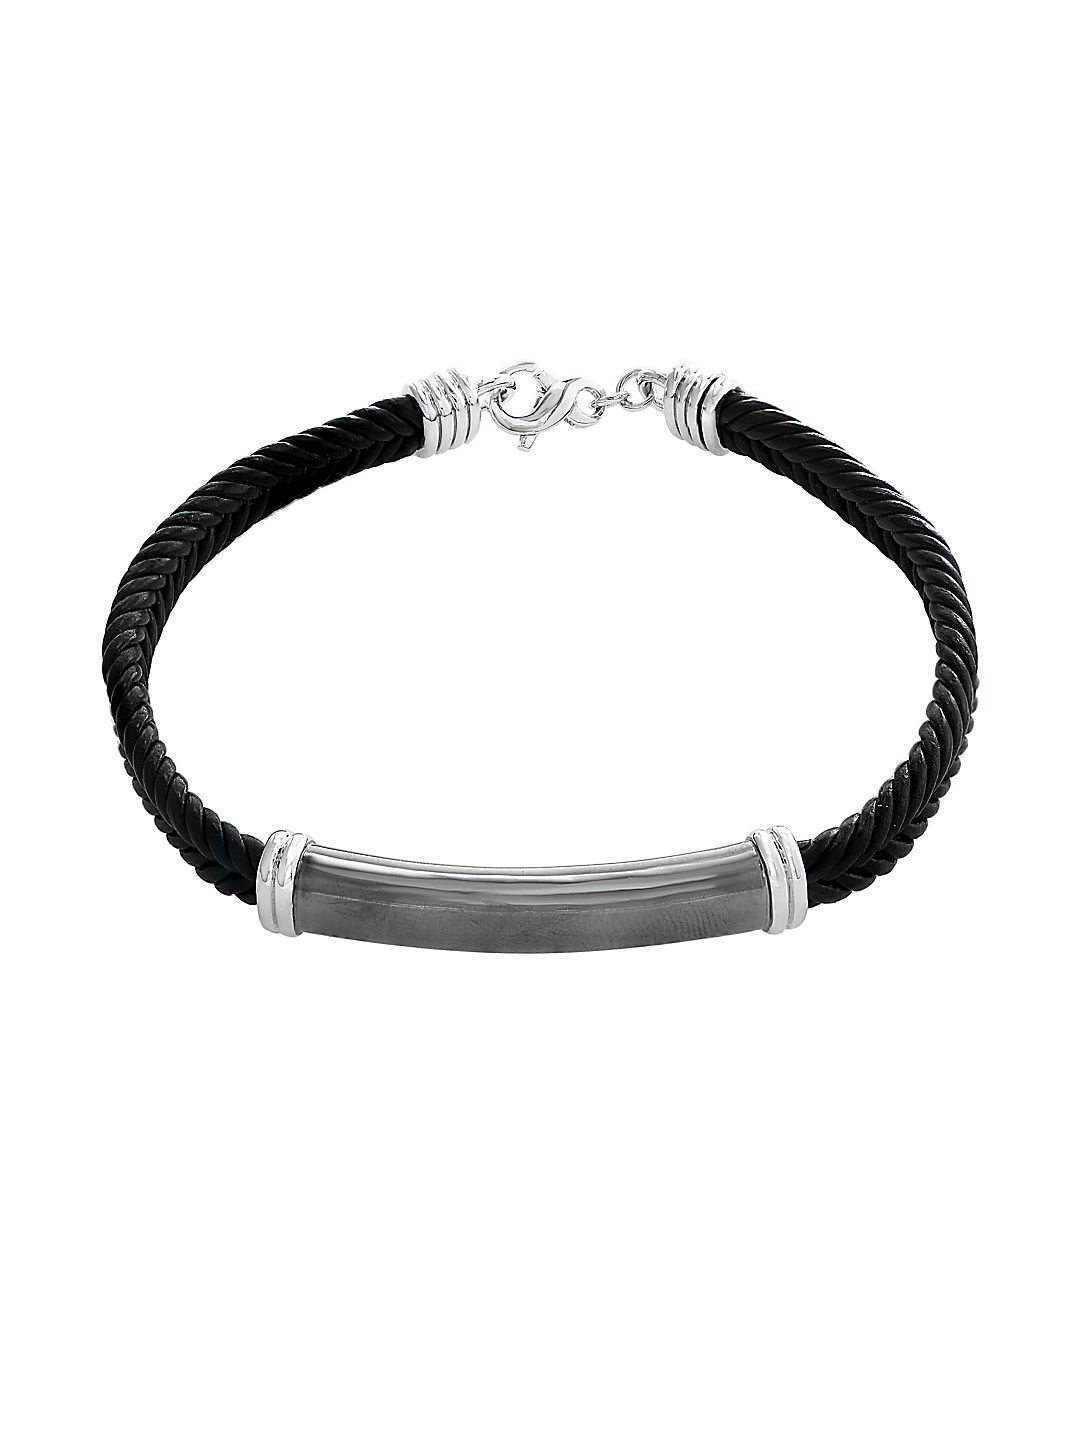 Gento Sterling Silver and Leather Bracelet